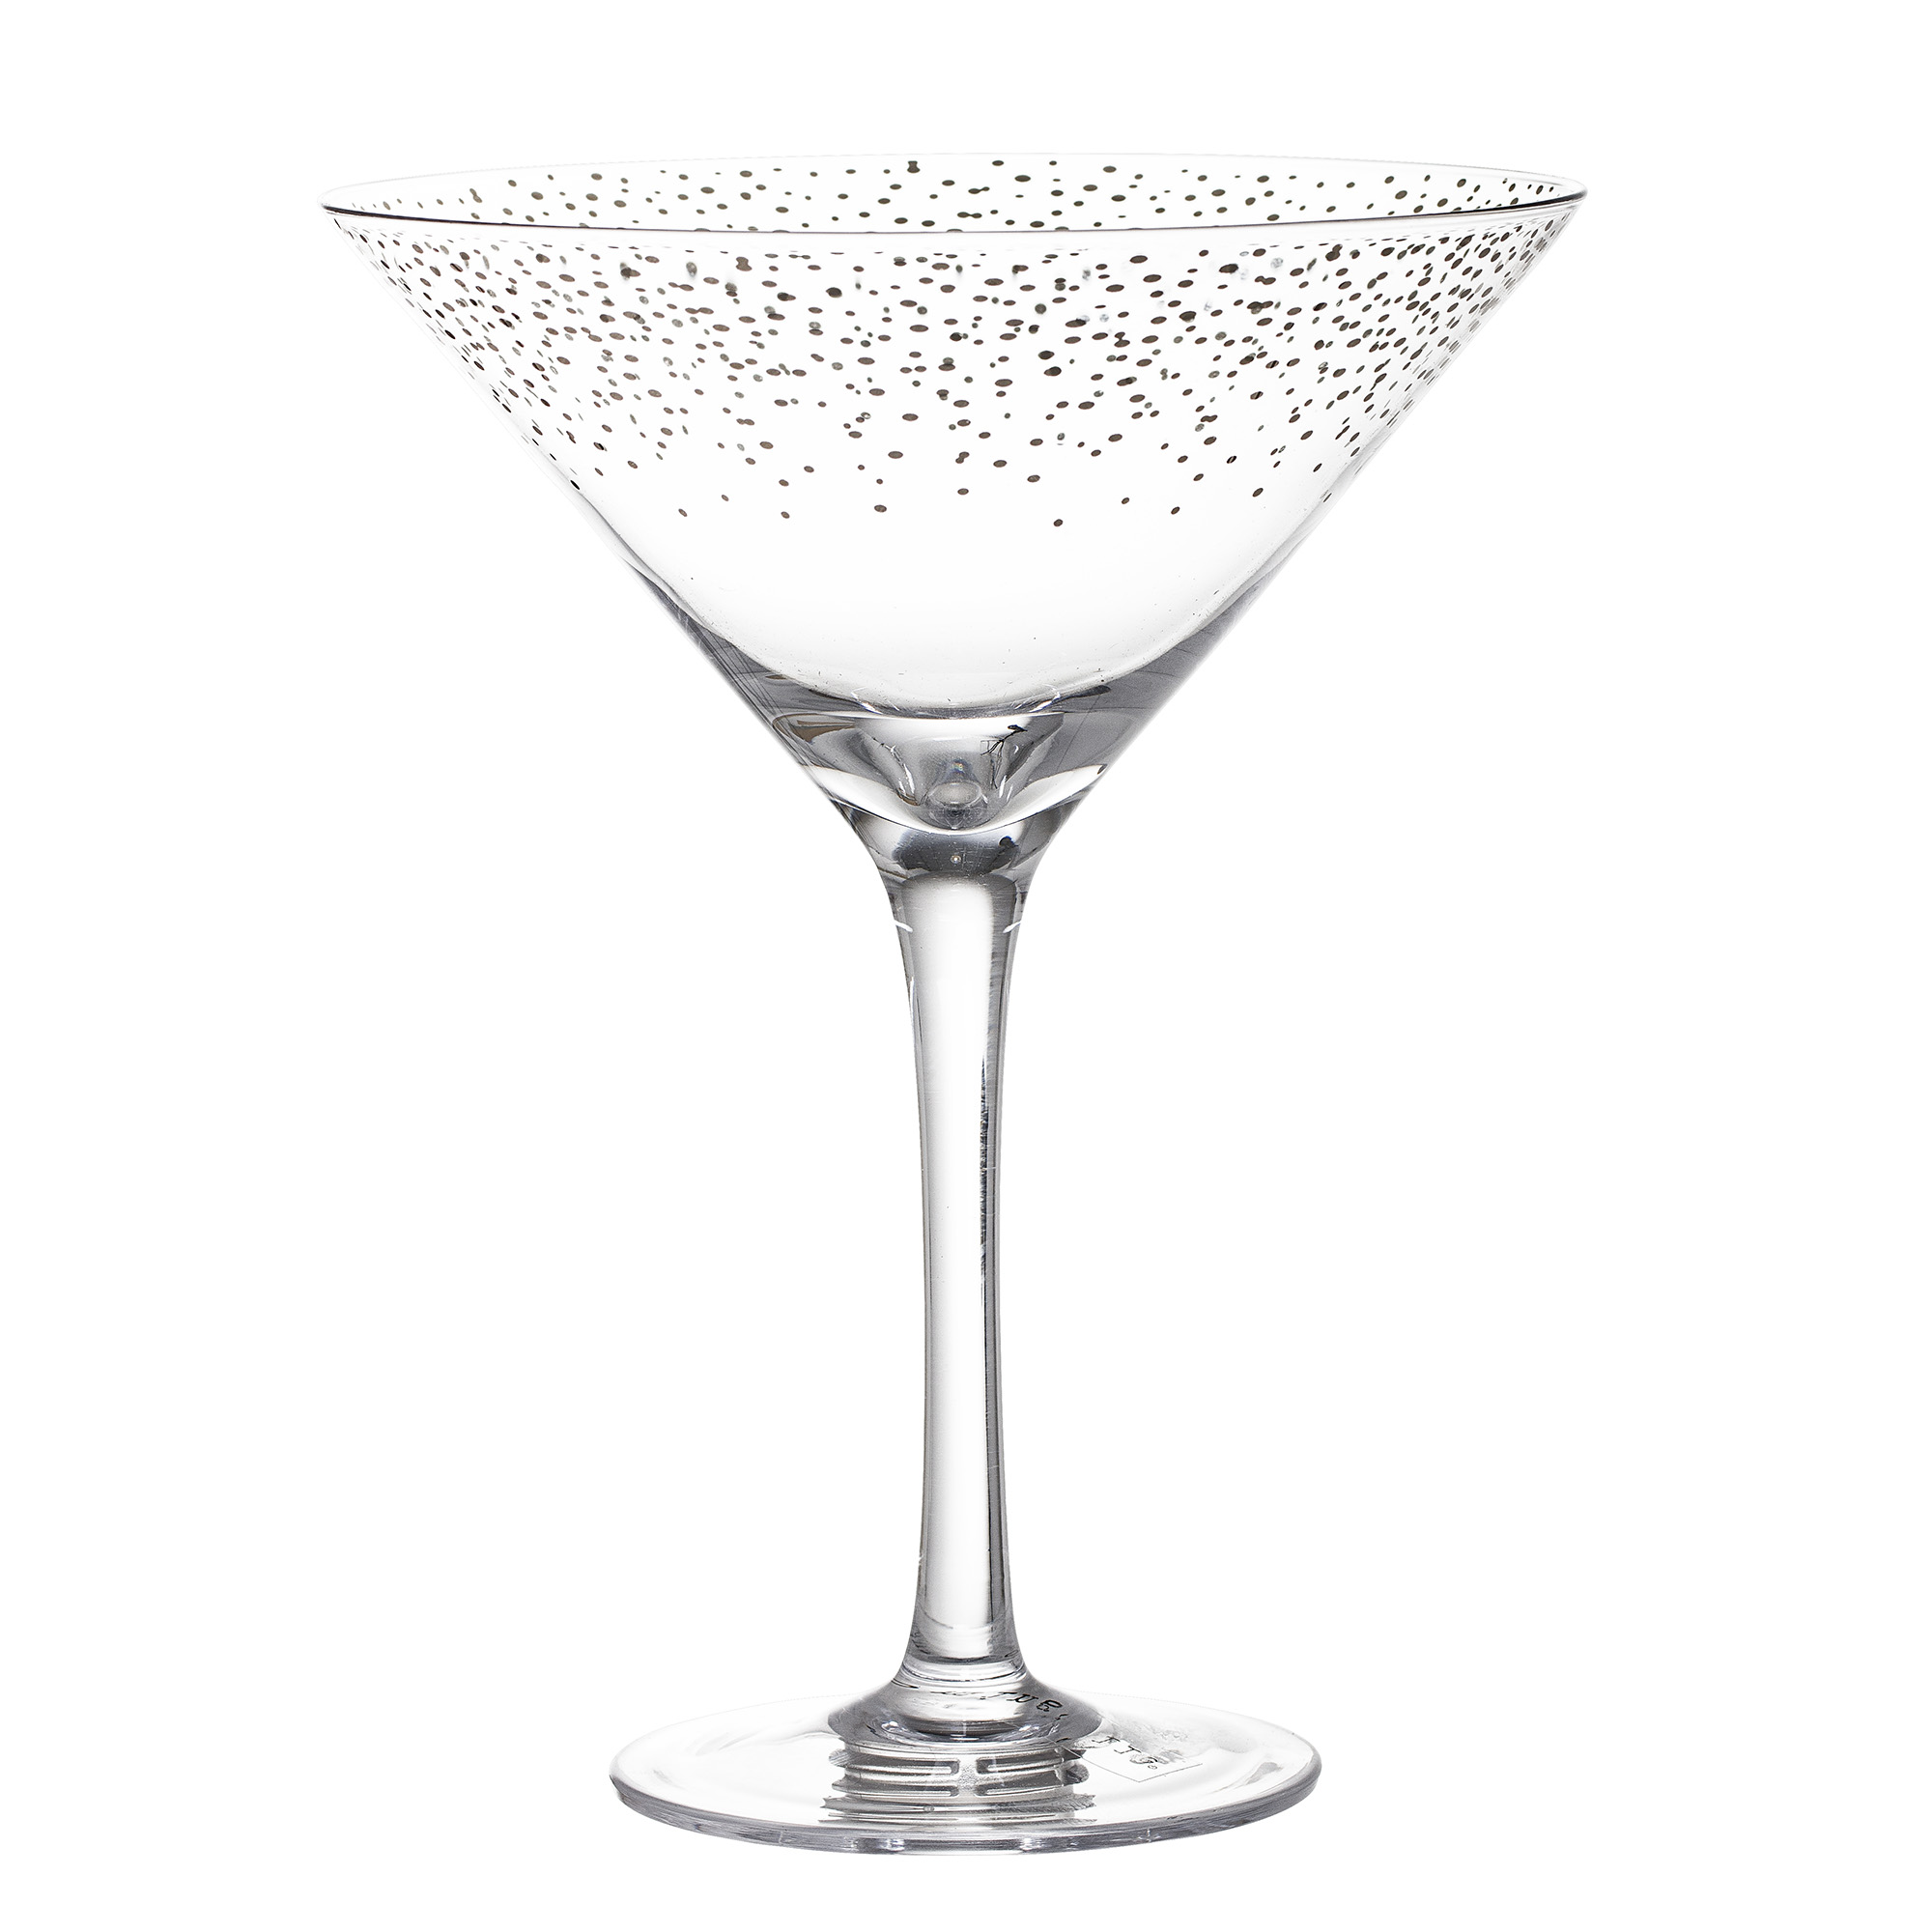 Cocktail glass, clear, glass